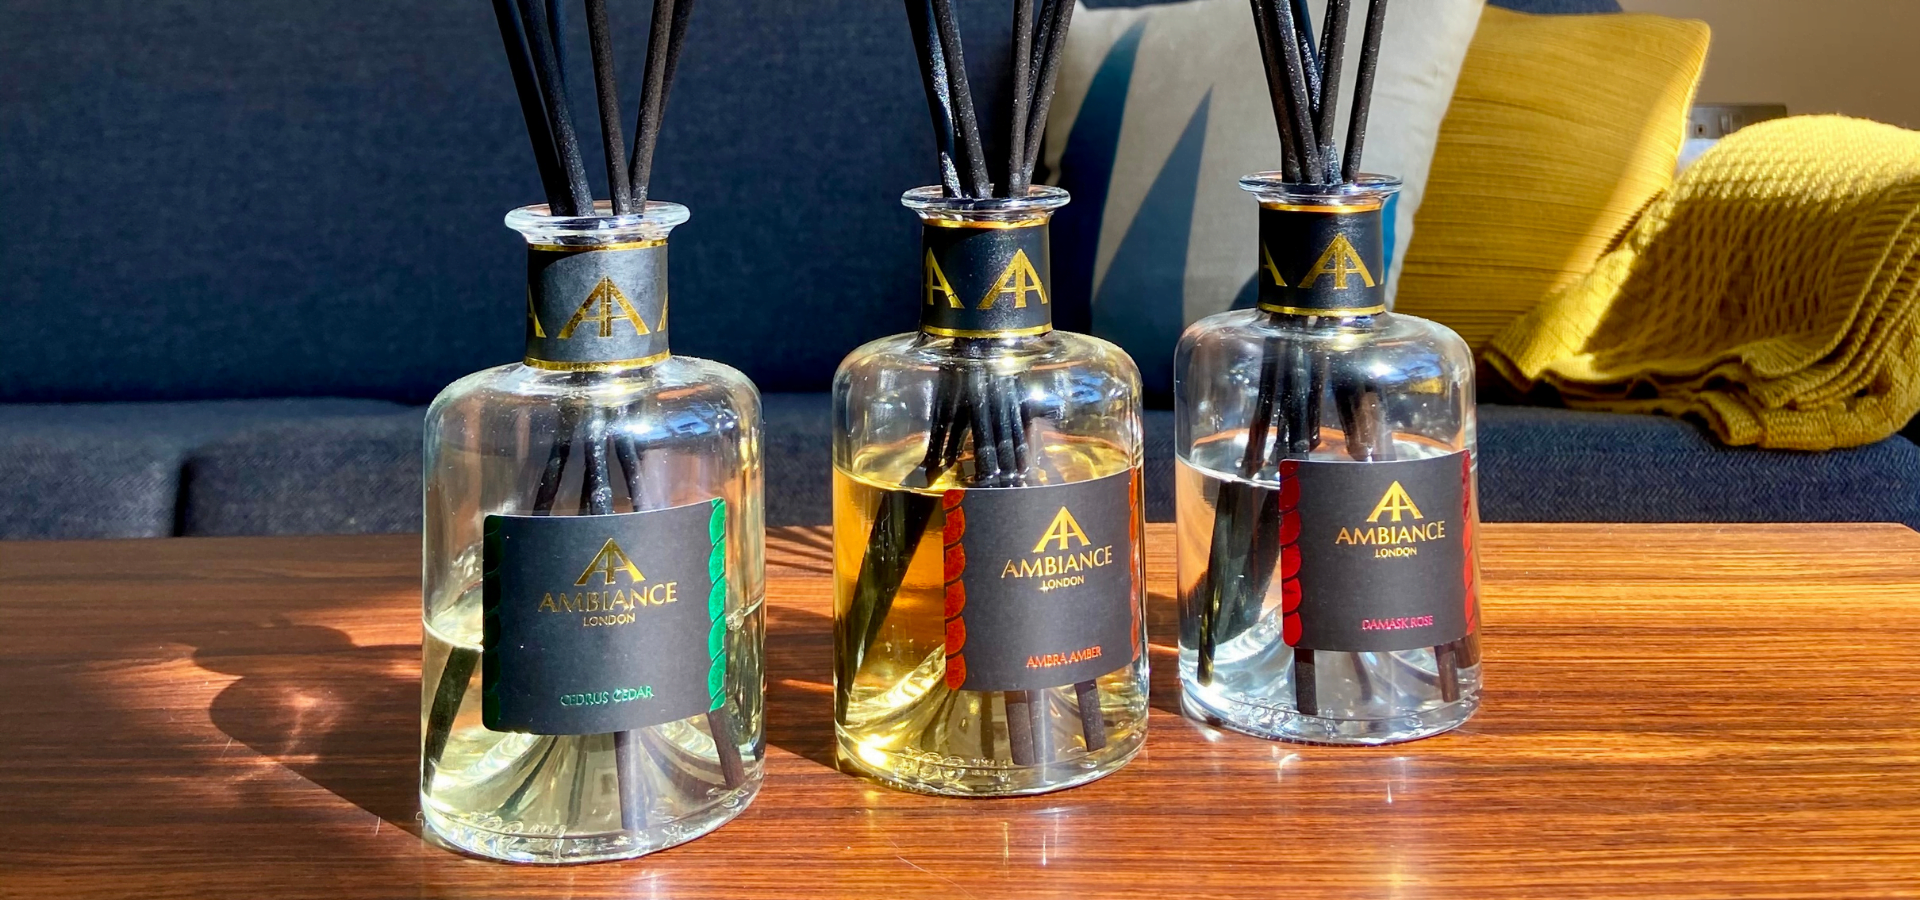 luxury reed diffusers - luxury home fragrance - reed diffuser sticks